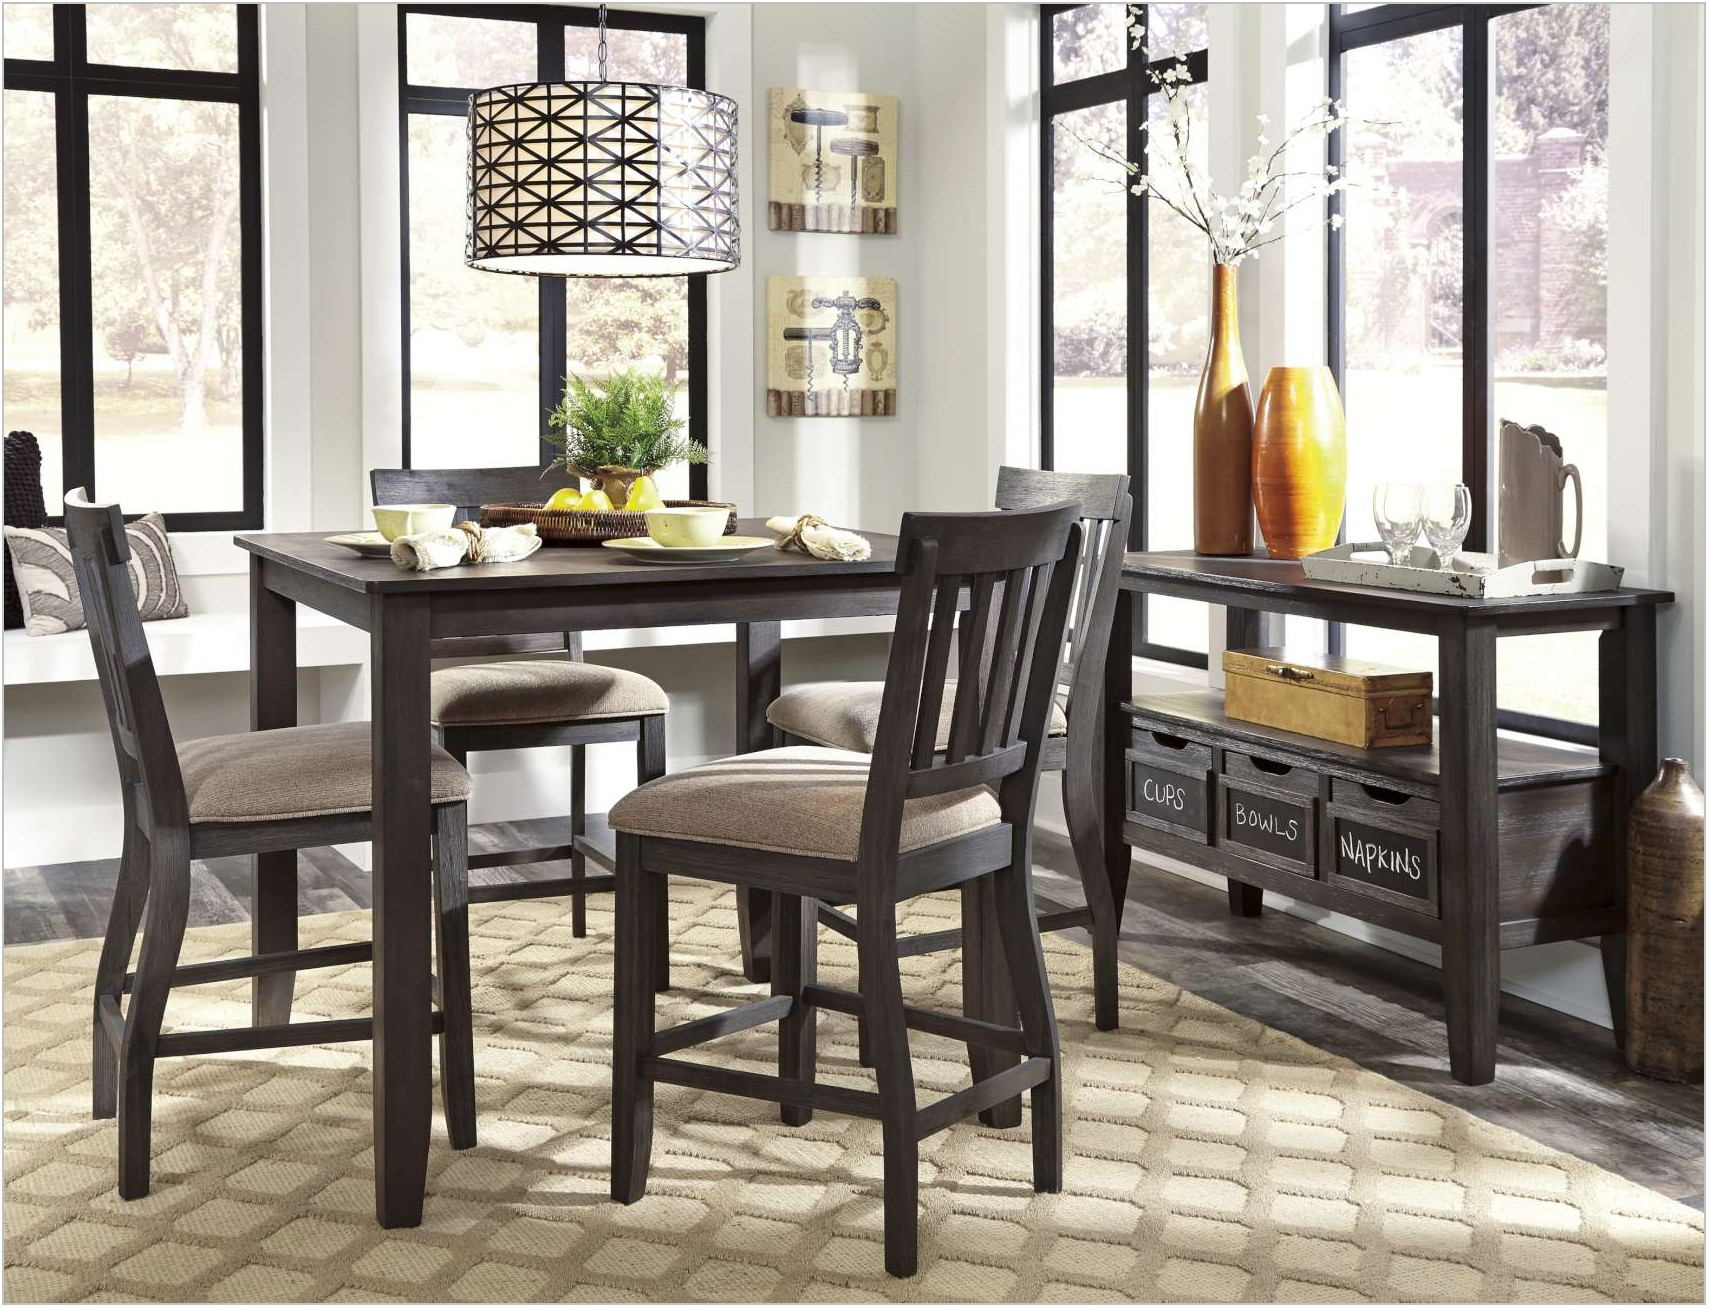 Dresbar Dining Room Server